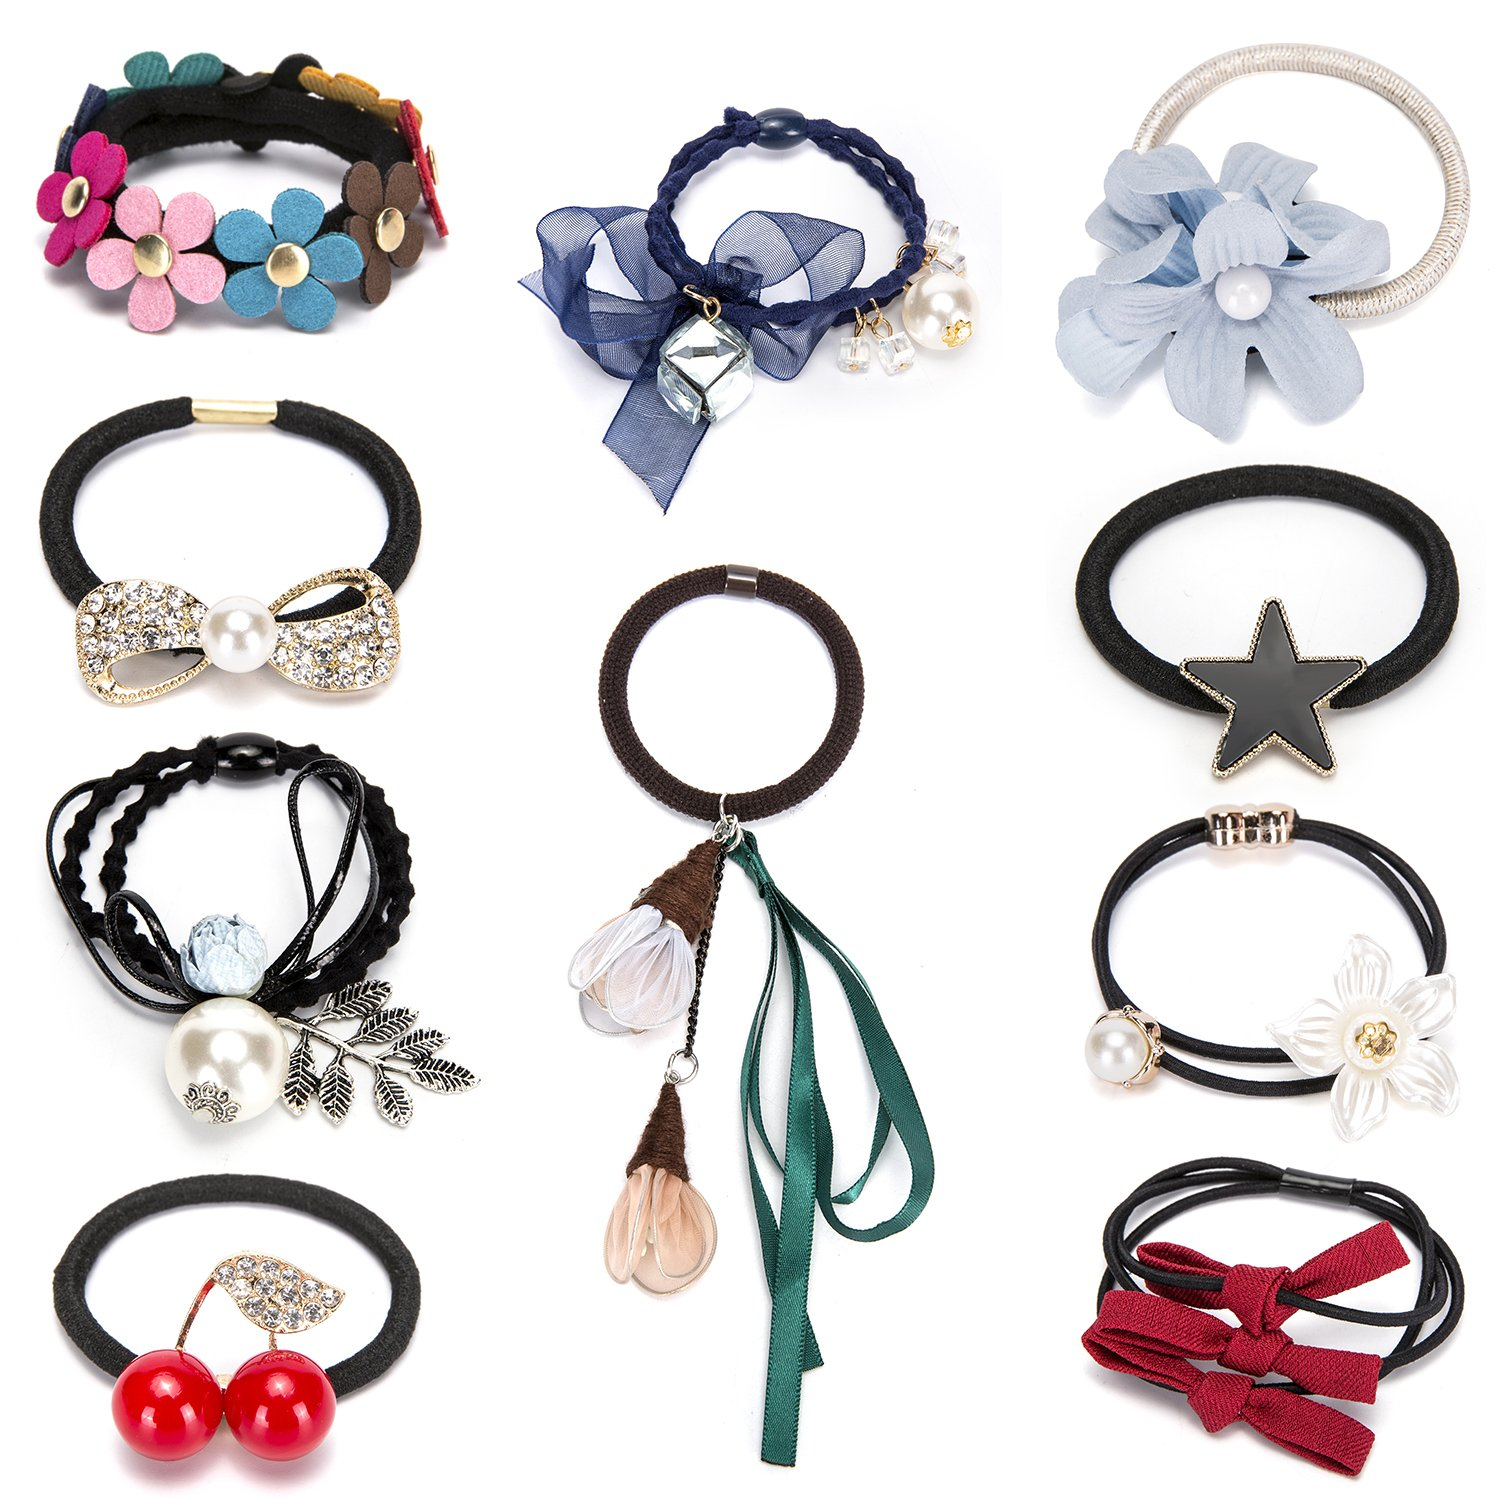 HY Fancy 7pc/10pc Stylish Stretch Hair Ties of Comfortable Elastic Cotton. These Cute Luxurious Hair Band Ponytail Holders are the Favorite Headband Scrunchie for Women and Girls (10 PCS:charming-02)